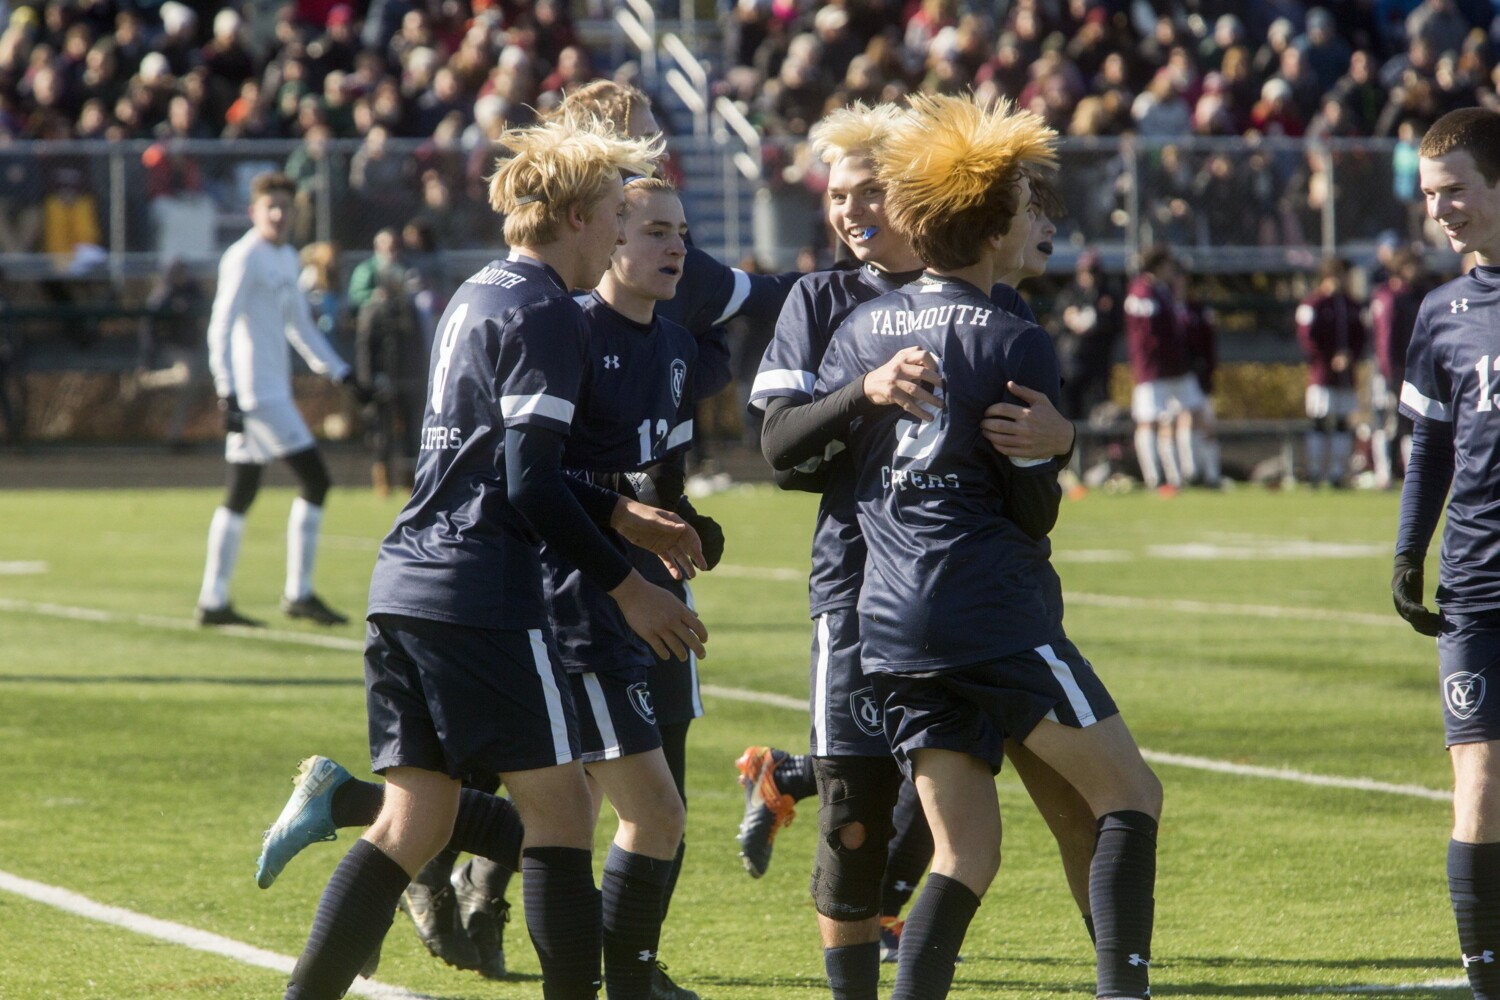 Boys' soccer: Yarmouth tops Caribou to win Class B title